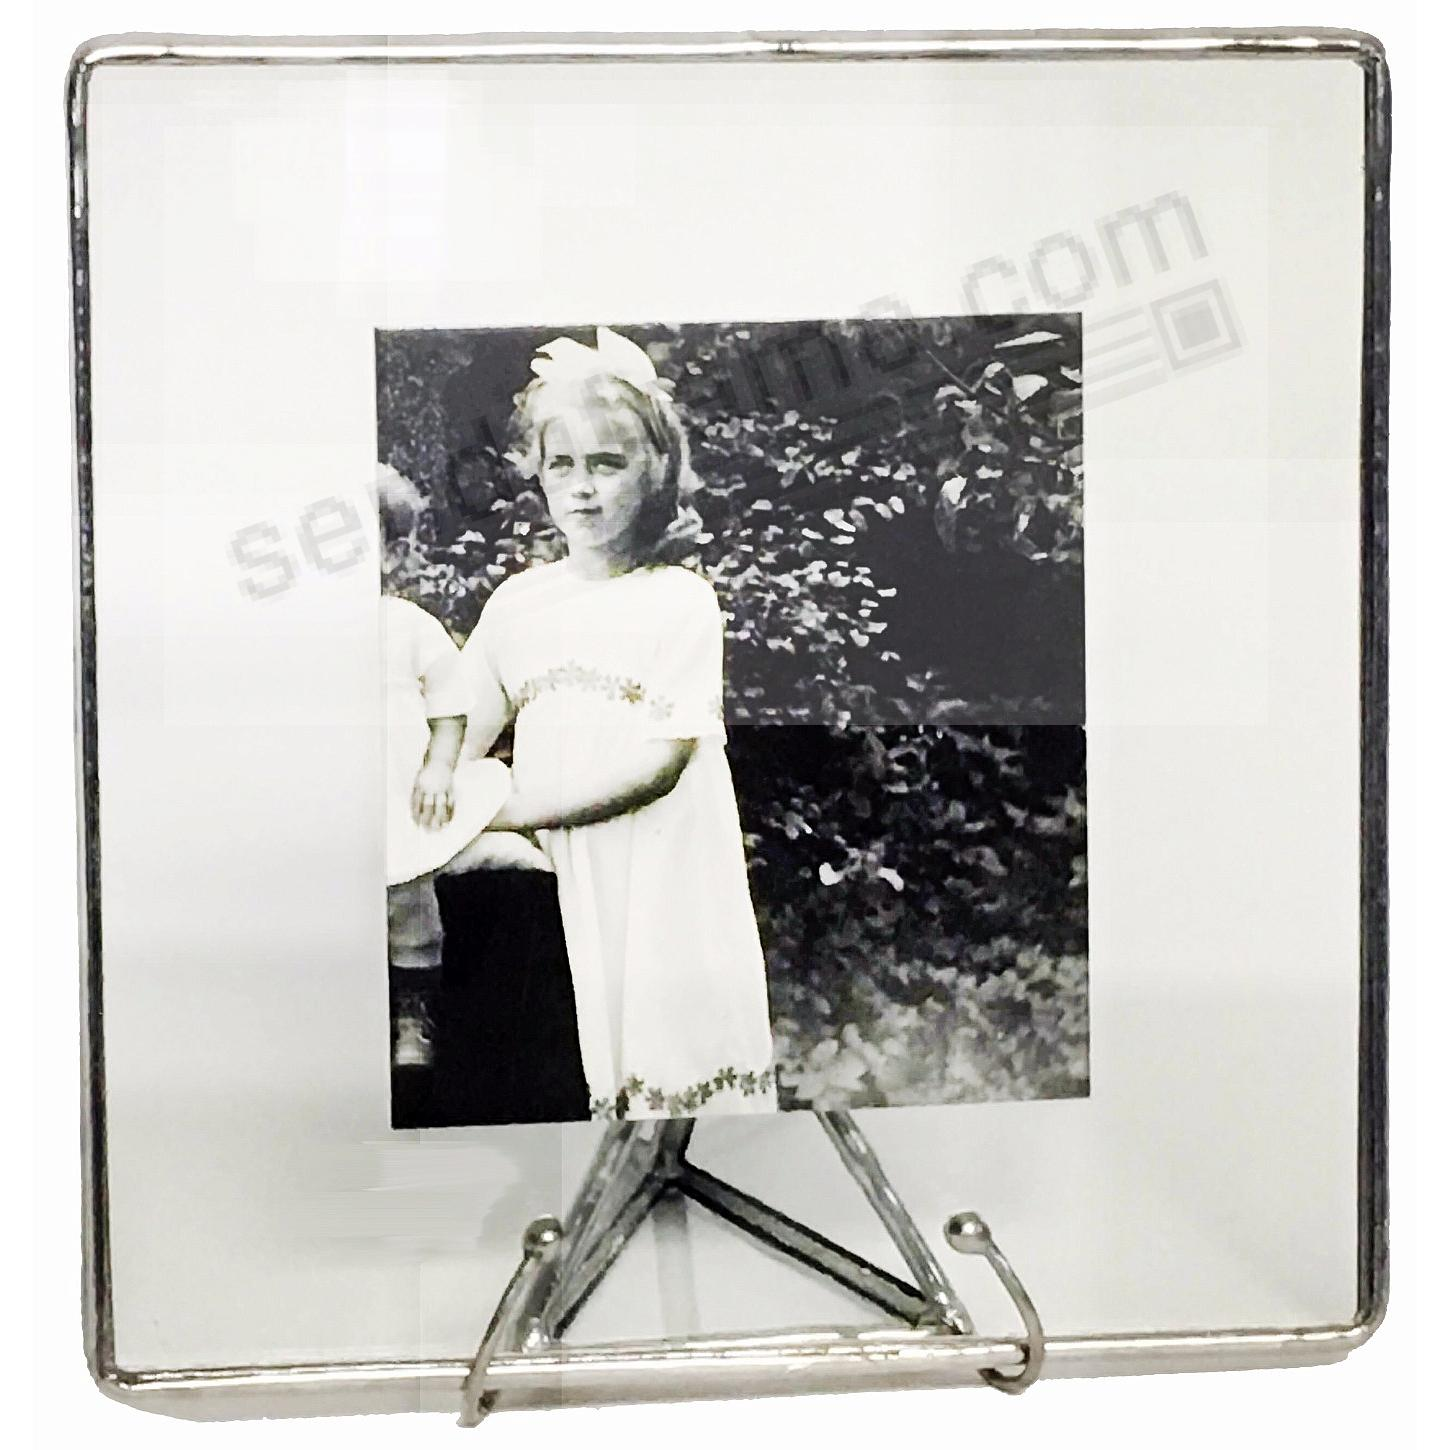 Picture frames photo albums personalized and engraved digital clear glass float frame 8x810x10 silver by bedford downingreg jeuxipadfo Image collections